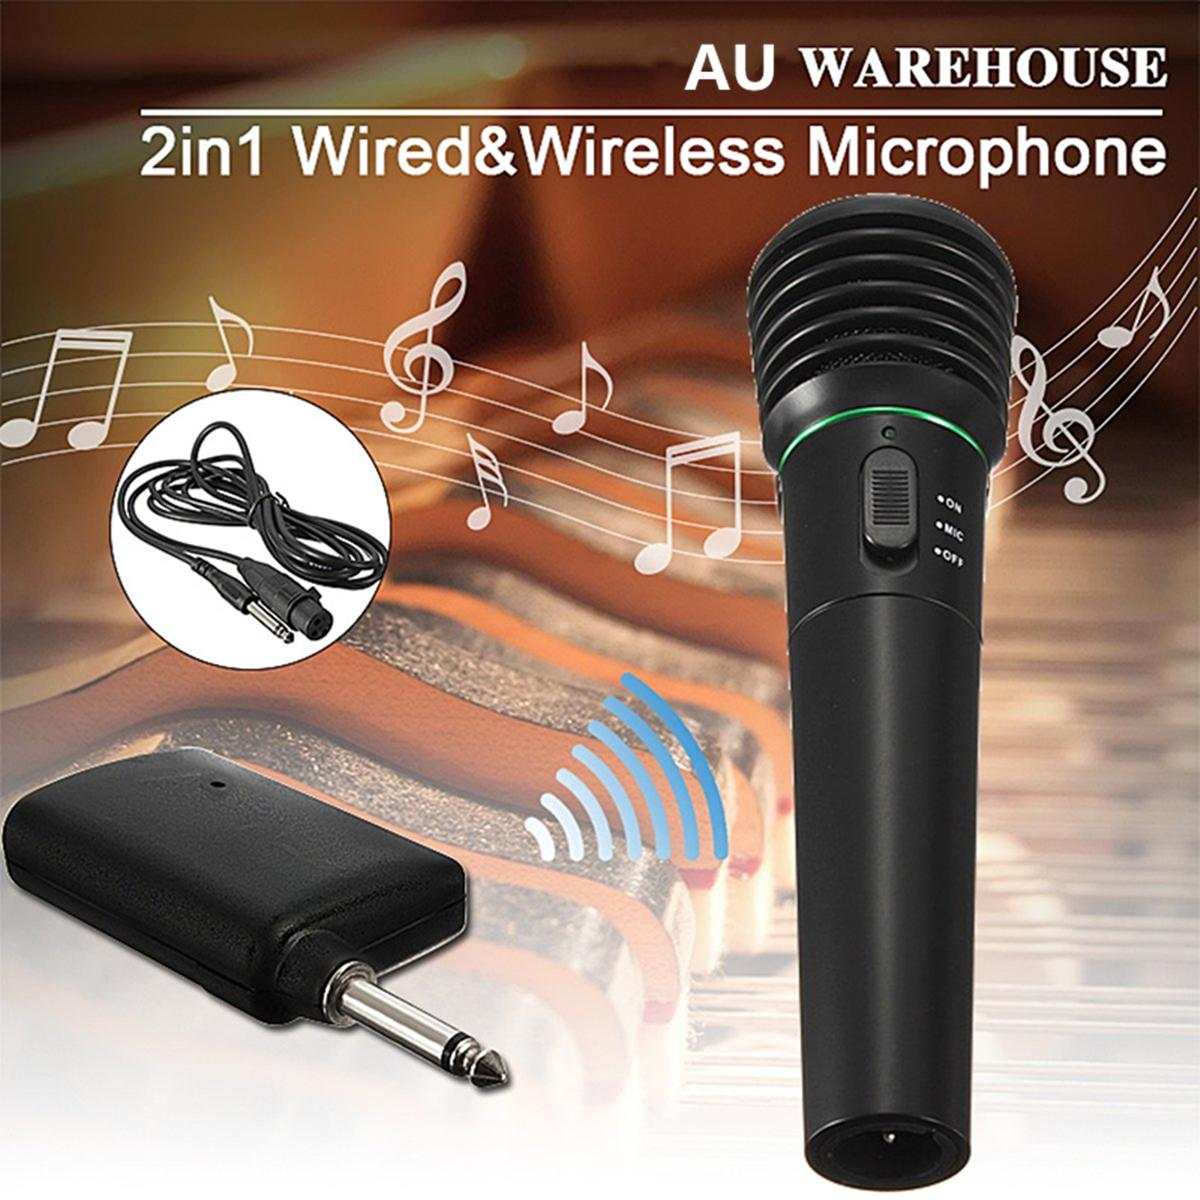 2 In1 Wired or Wireless Handheld Microphone Mic Receiver System Transmitter Undirectional Black